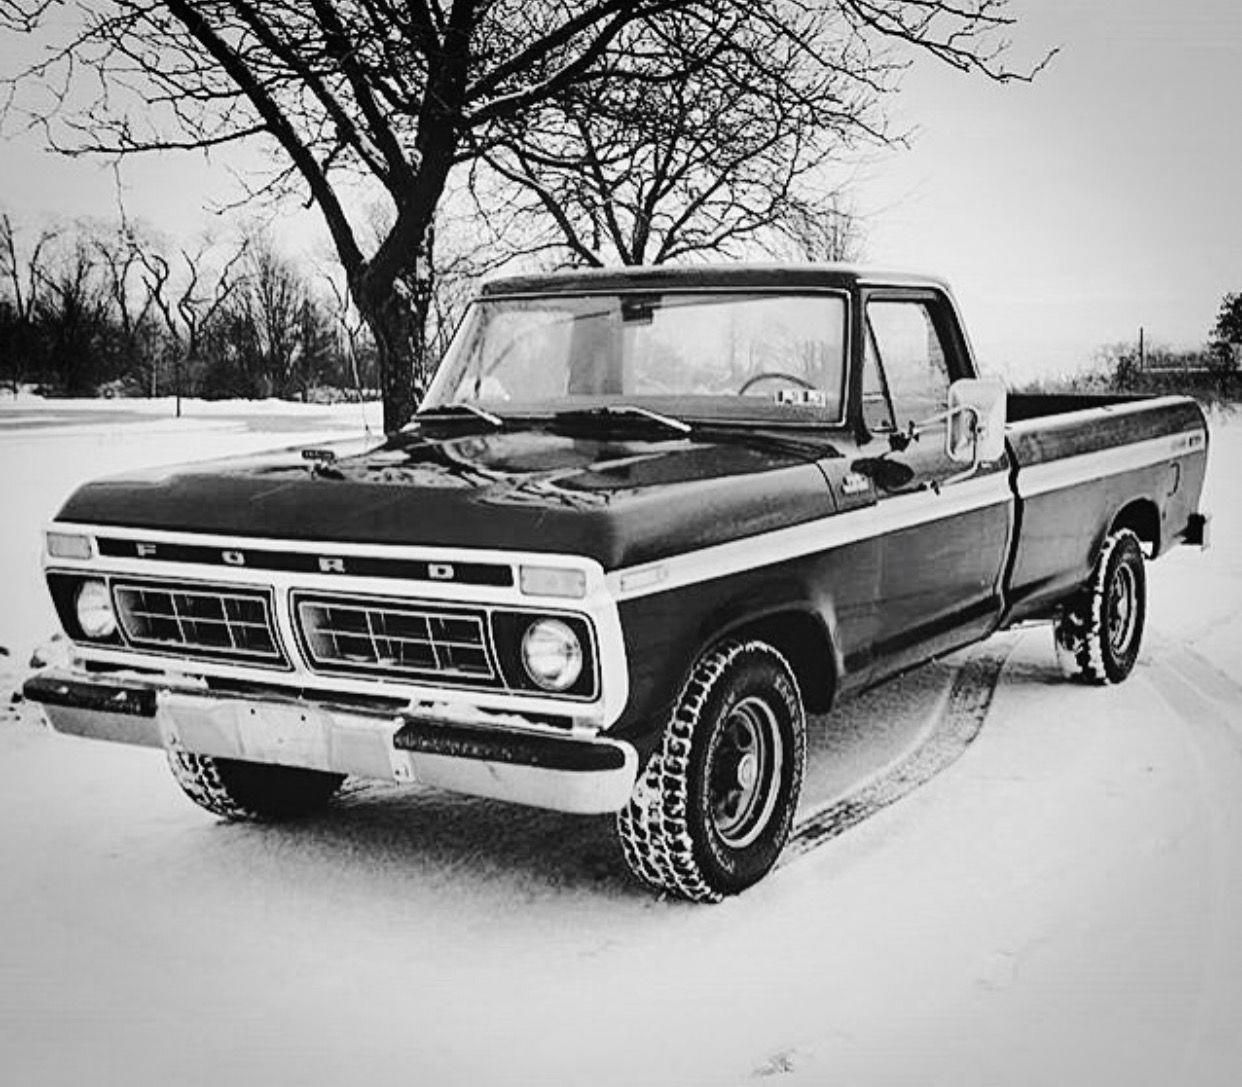 Whoa! I quite fancy this design for this 1970 f150